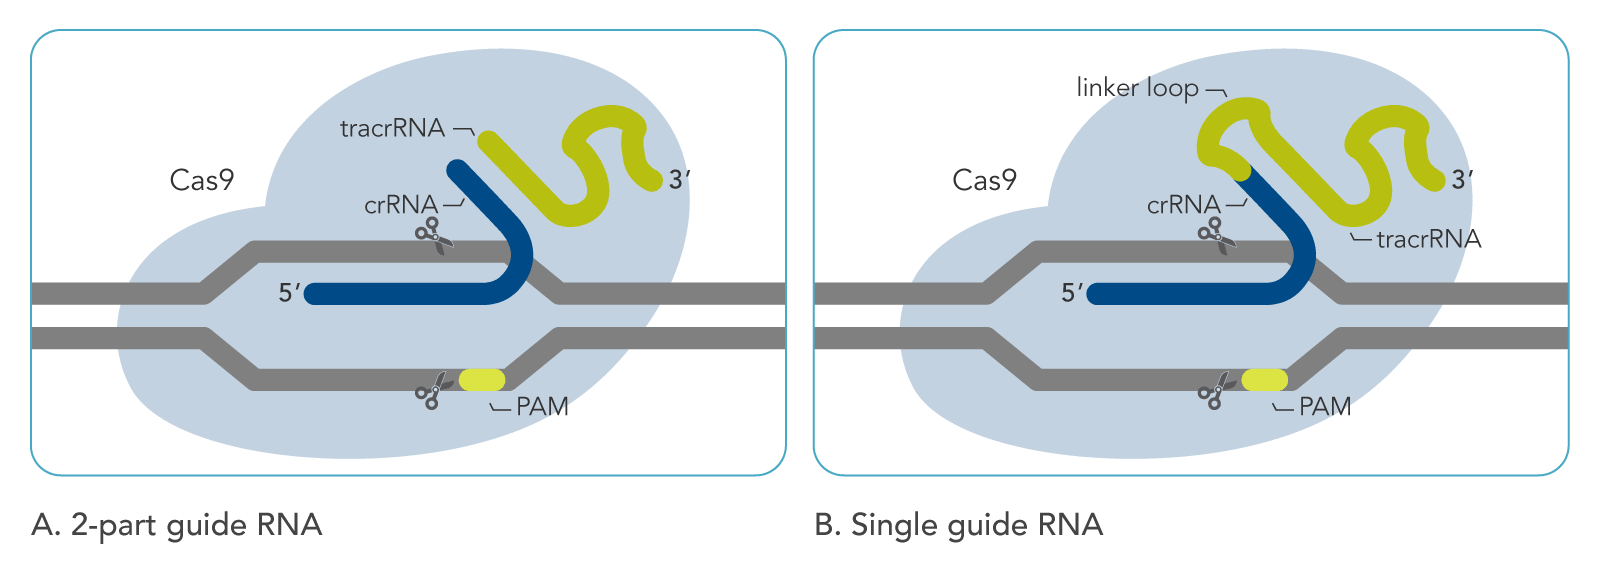 Cas9 art A. 2-part guide RNA  B. Single guide RNA